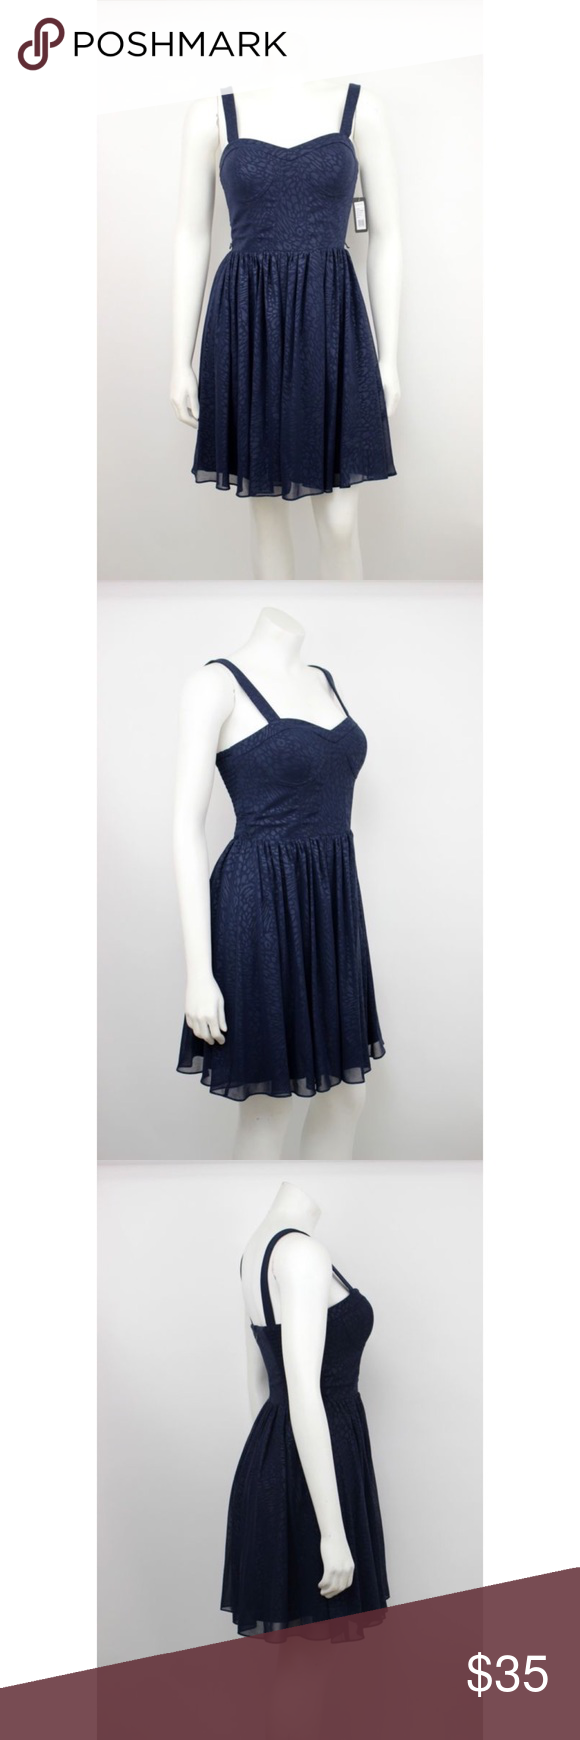 "NWT Guess Navy Blue Animal Print Chiffon Dress NWT Guess Navy Blue Corset Bodice Animal Print Overlay Chiffon Dress. Has belt loops for a belt.   Measurements (flat / un-stretched): Tagged Size: 4 Bust: 30"" Length (shoulder to hem): 34"" Guess Dresses"